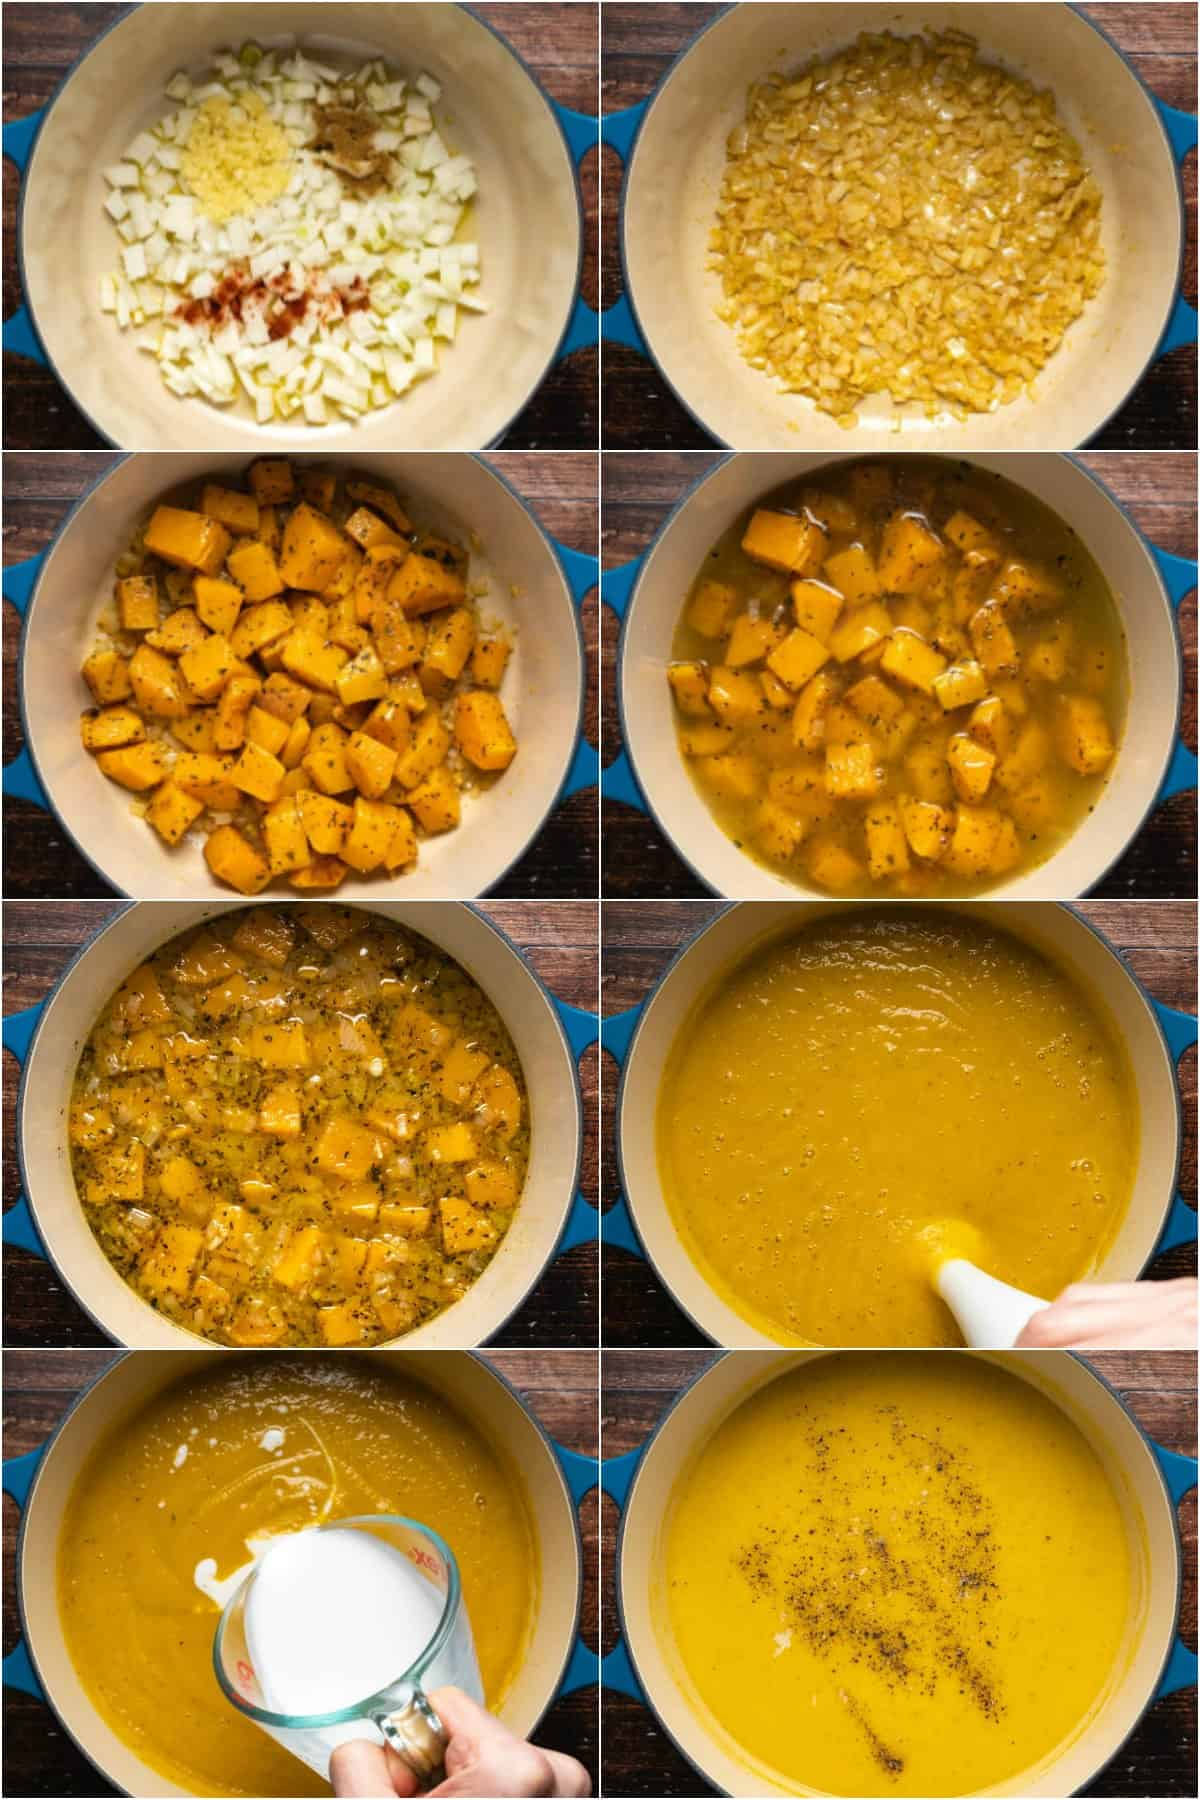 Step by step process photo collage of making vegan butternut squash soup.